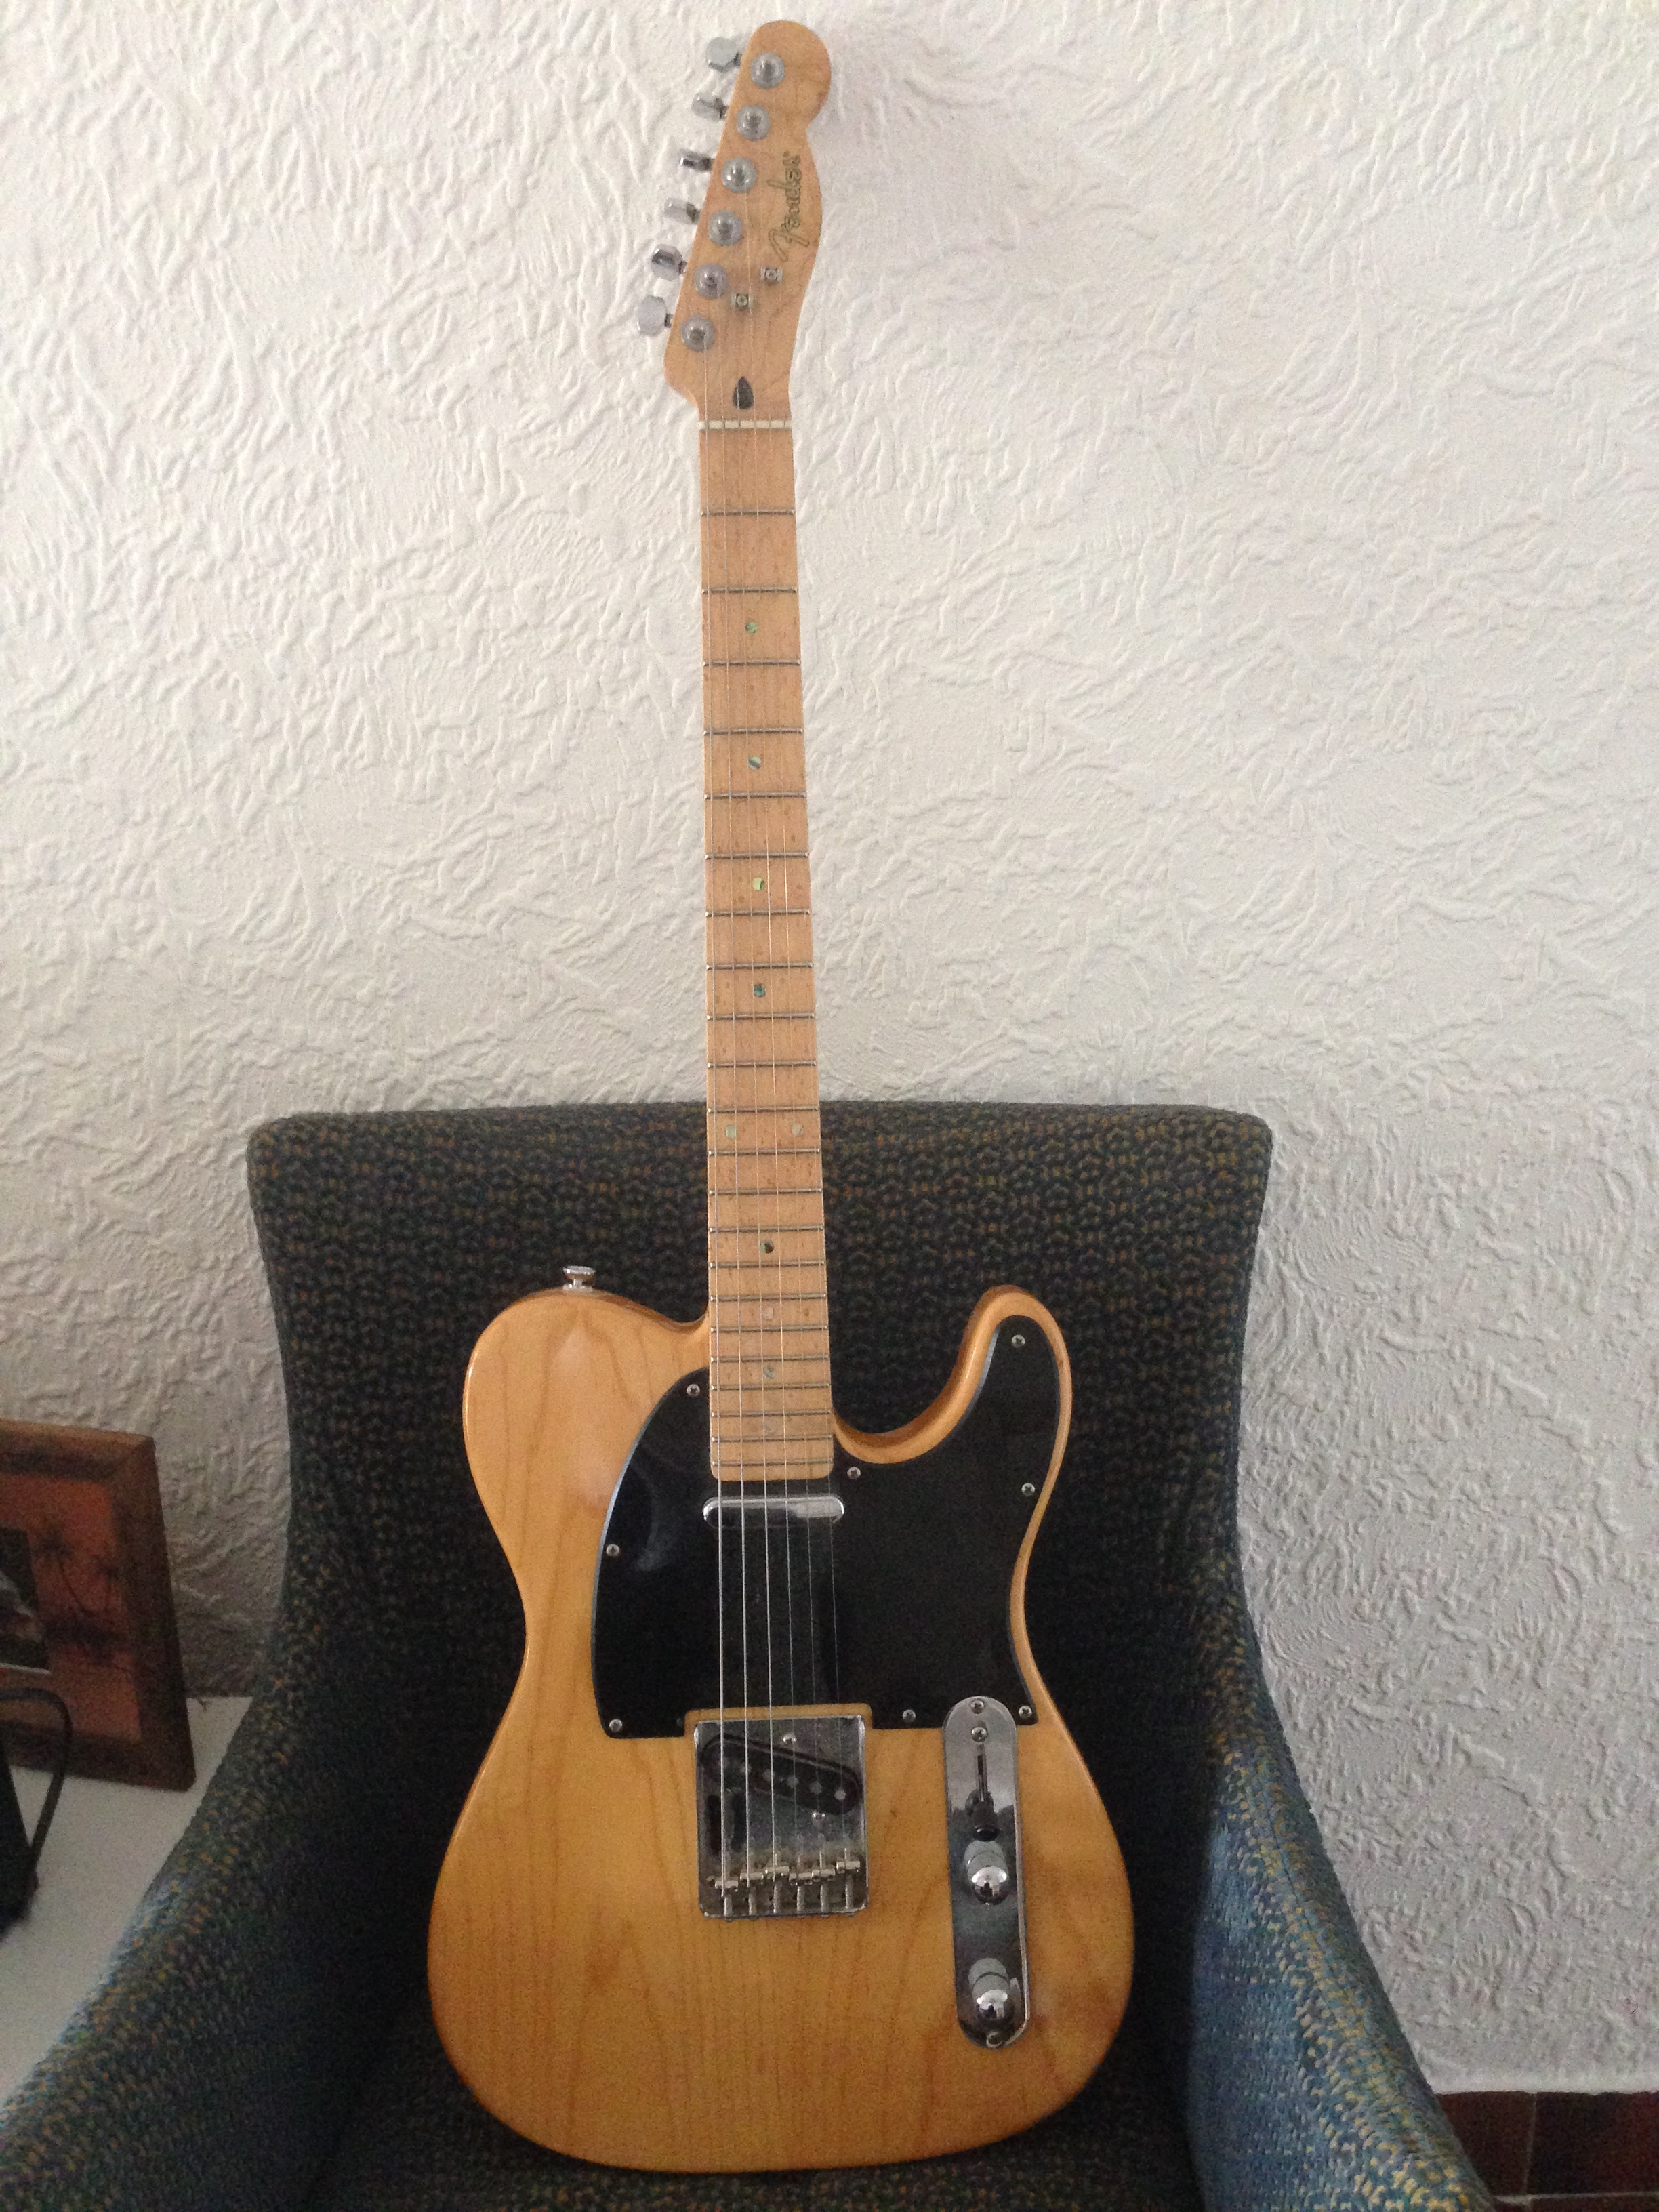 Fender Lite Ash Telecaster Vintage White Free Download Acoustic Electric Guitar Wiring Diagram 6 String Features An Birdseye Maple Fingerboard Black Pickguard Seymour Duncan Alnico Pro Pickups Possible Experience Therefore Important View